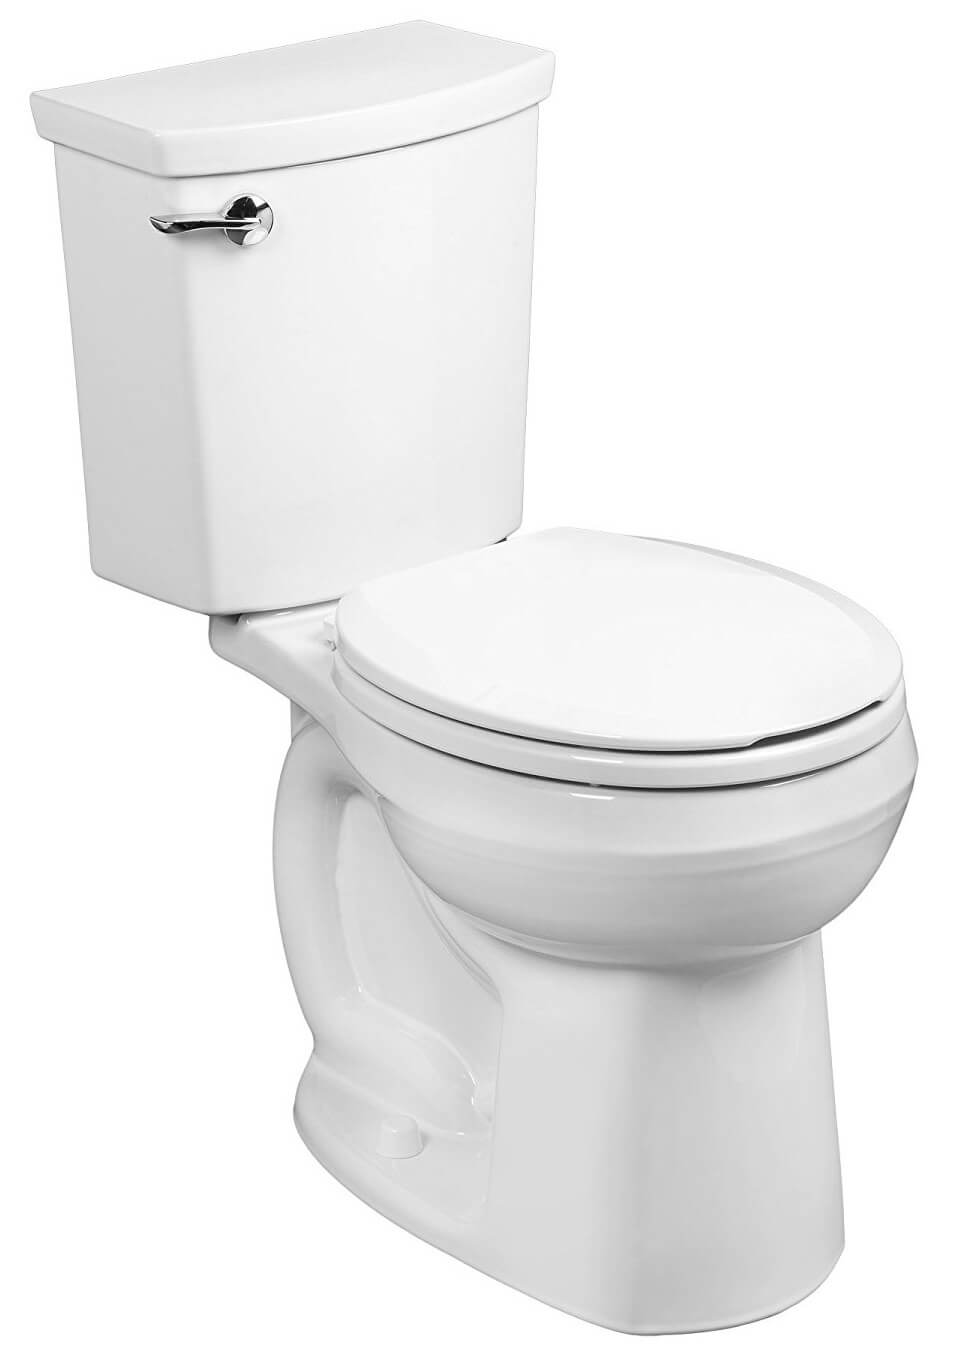 Best toilet on the market reviews - American Standard 288da114 020 H2optimum Siphonic Normal Height Round Front Toilet